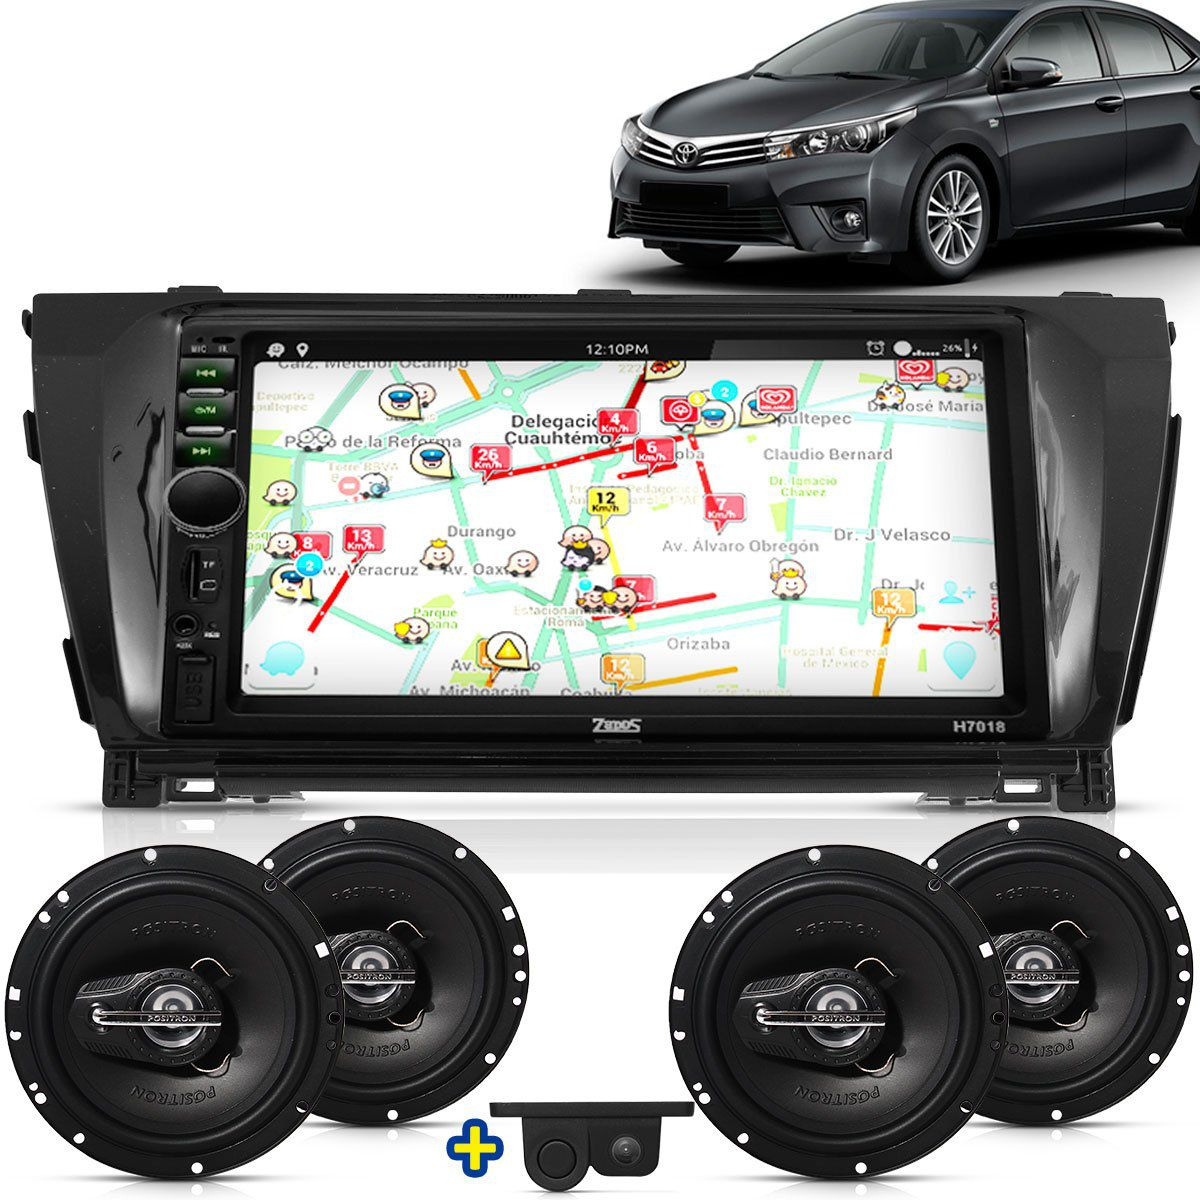 Kit Multimidia Mp5 Corolla 2014 2015 2016 + Moldura Camera Ré Sensor 2 Pares Alto Falantes 6